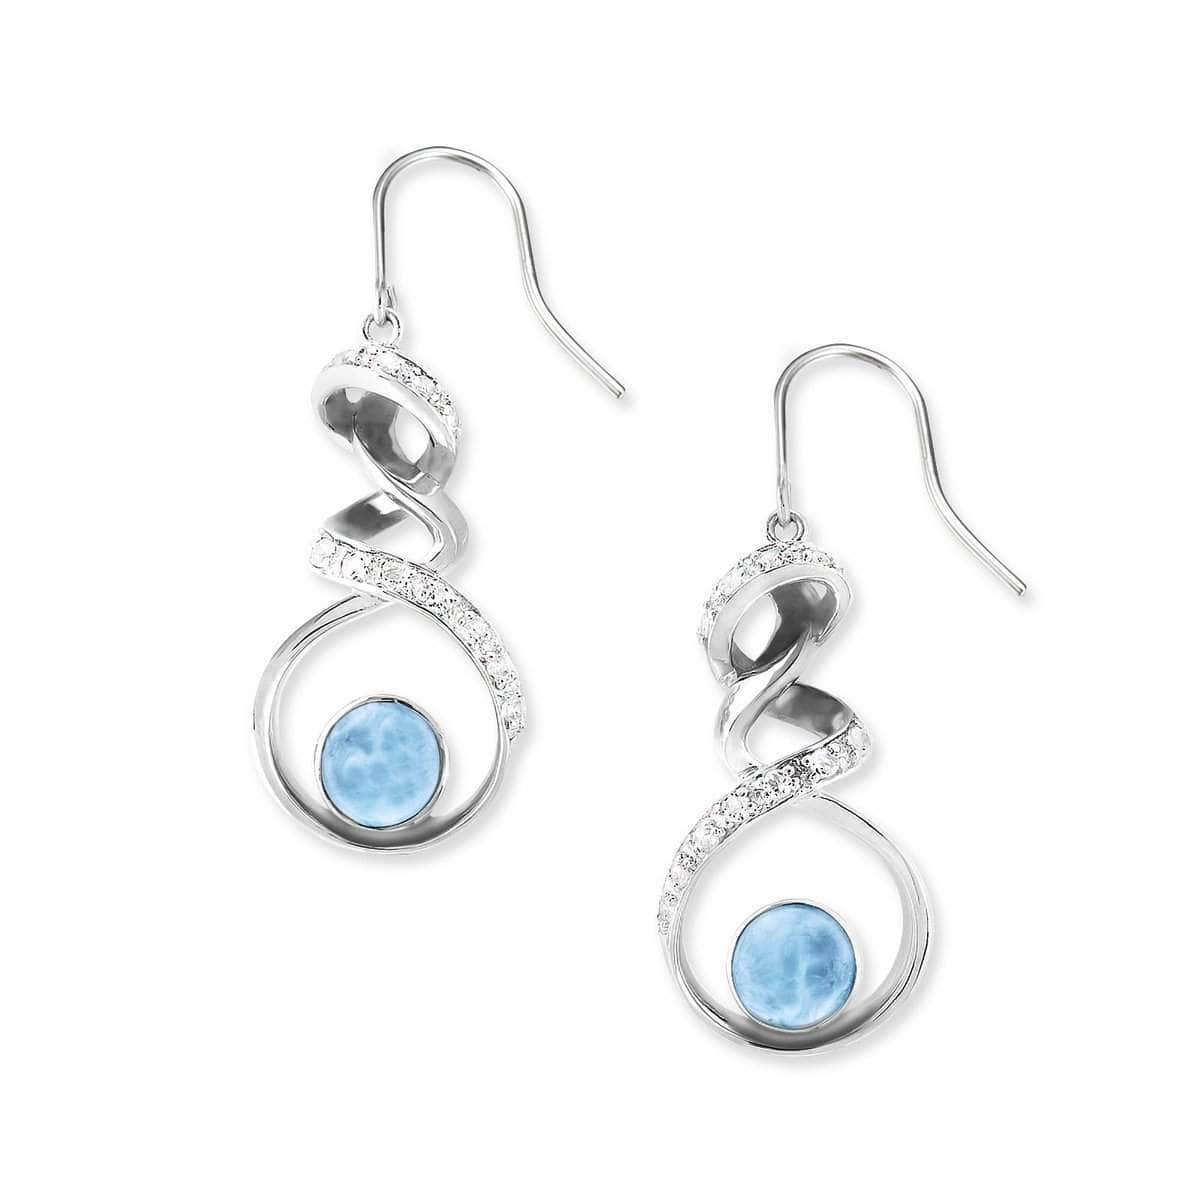 Dante White Topaz Earrings - Edant00-00-Marahlago Larimar-Renee Taylor Gallery